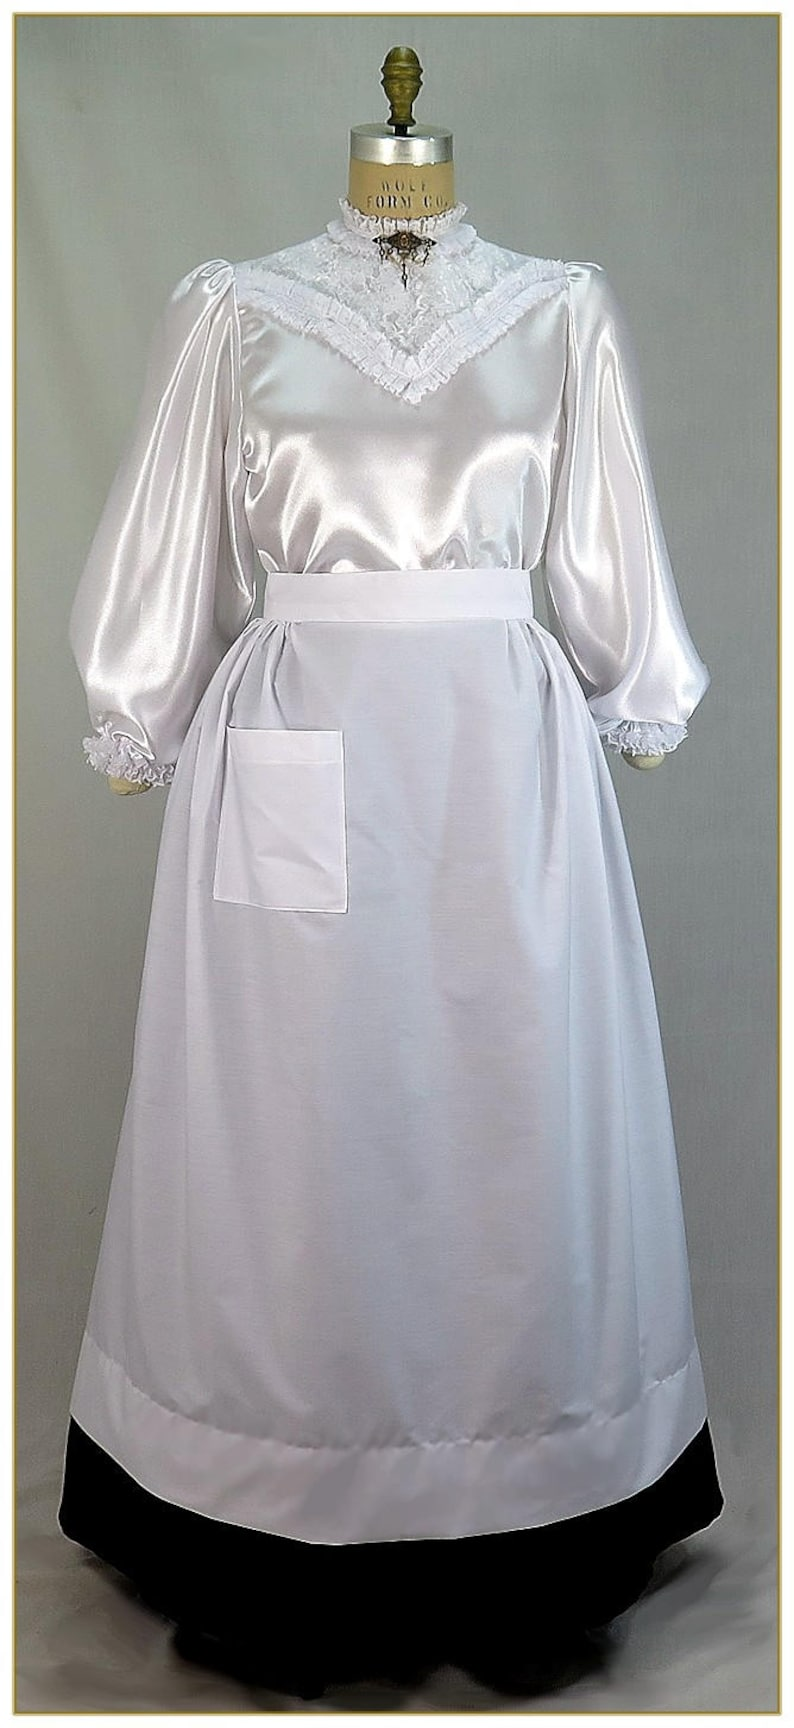 Vintage Aprons, Retro Aprons, Old Fashioned Aprons & Patterns Victorian Maids Full Length Half Apron $39.00 AT vintagedancer.com